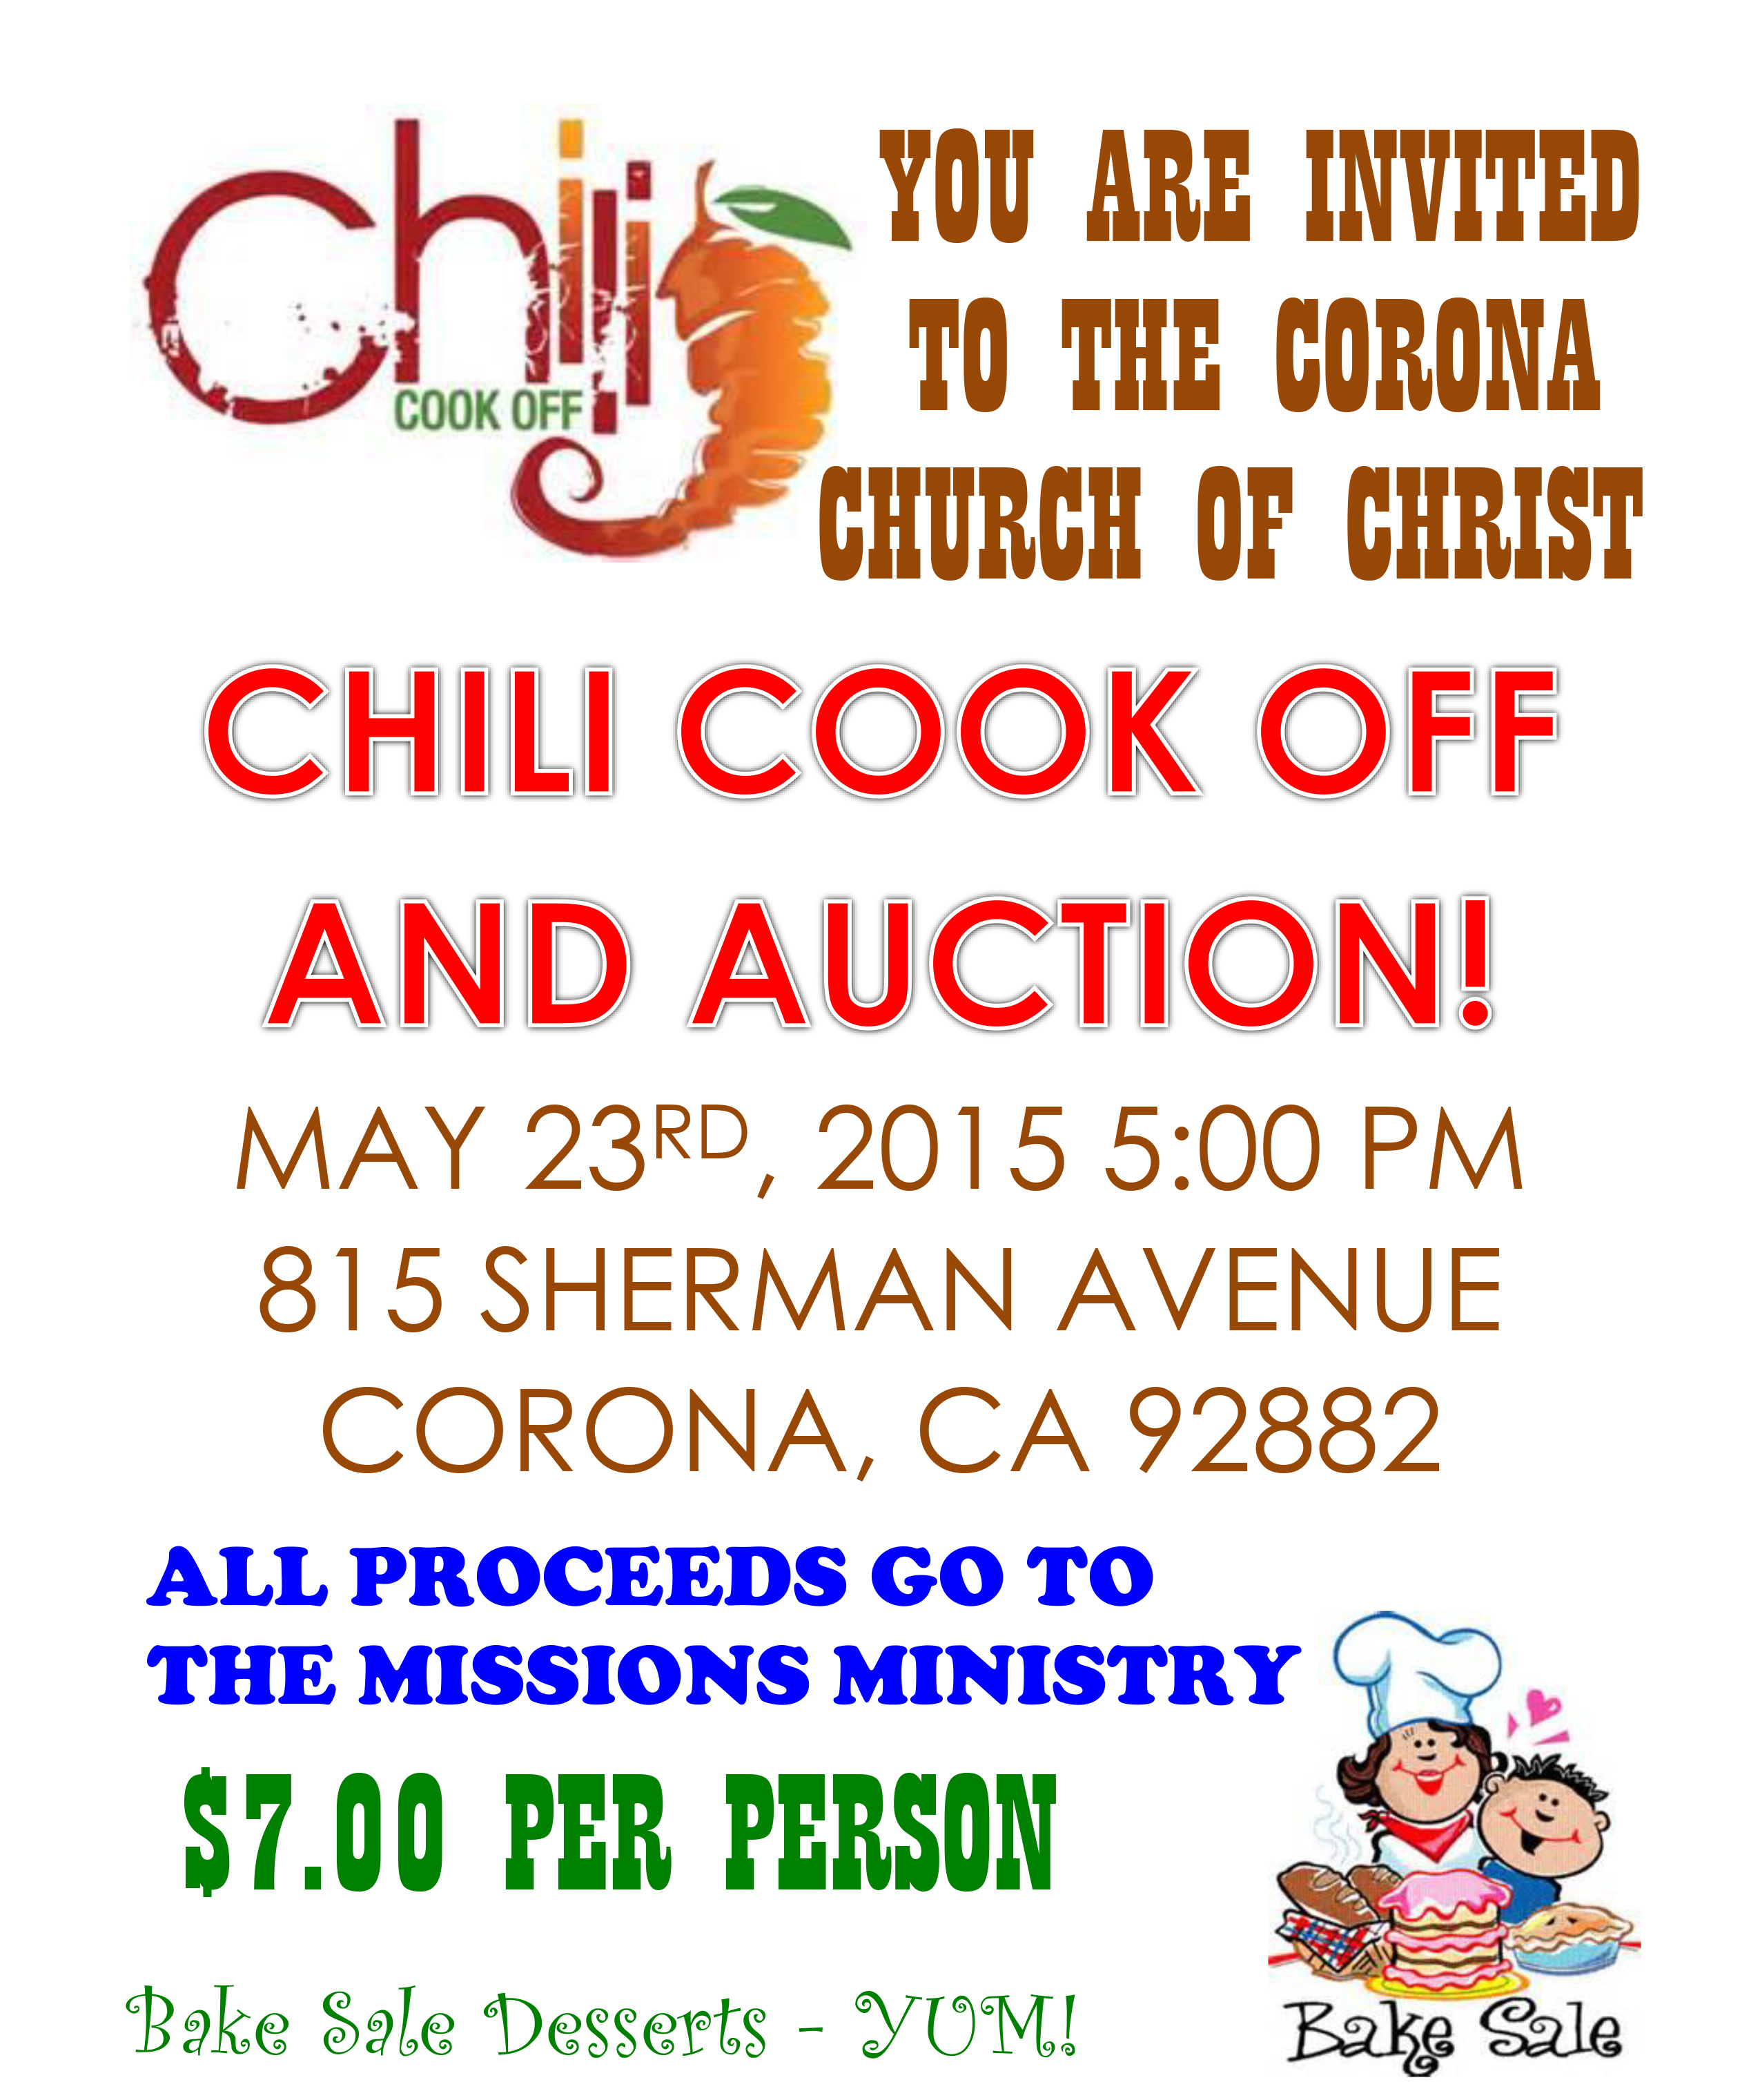 Chili-Cookoff-Acuction